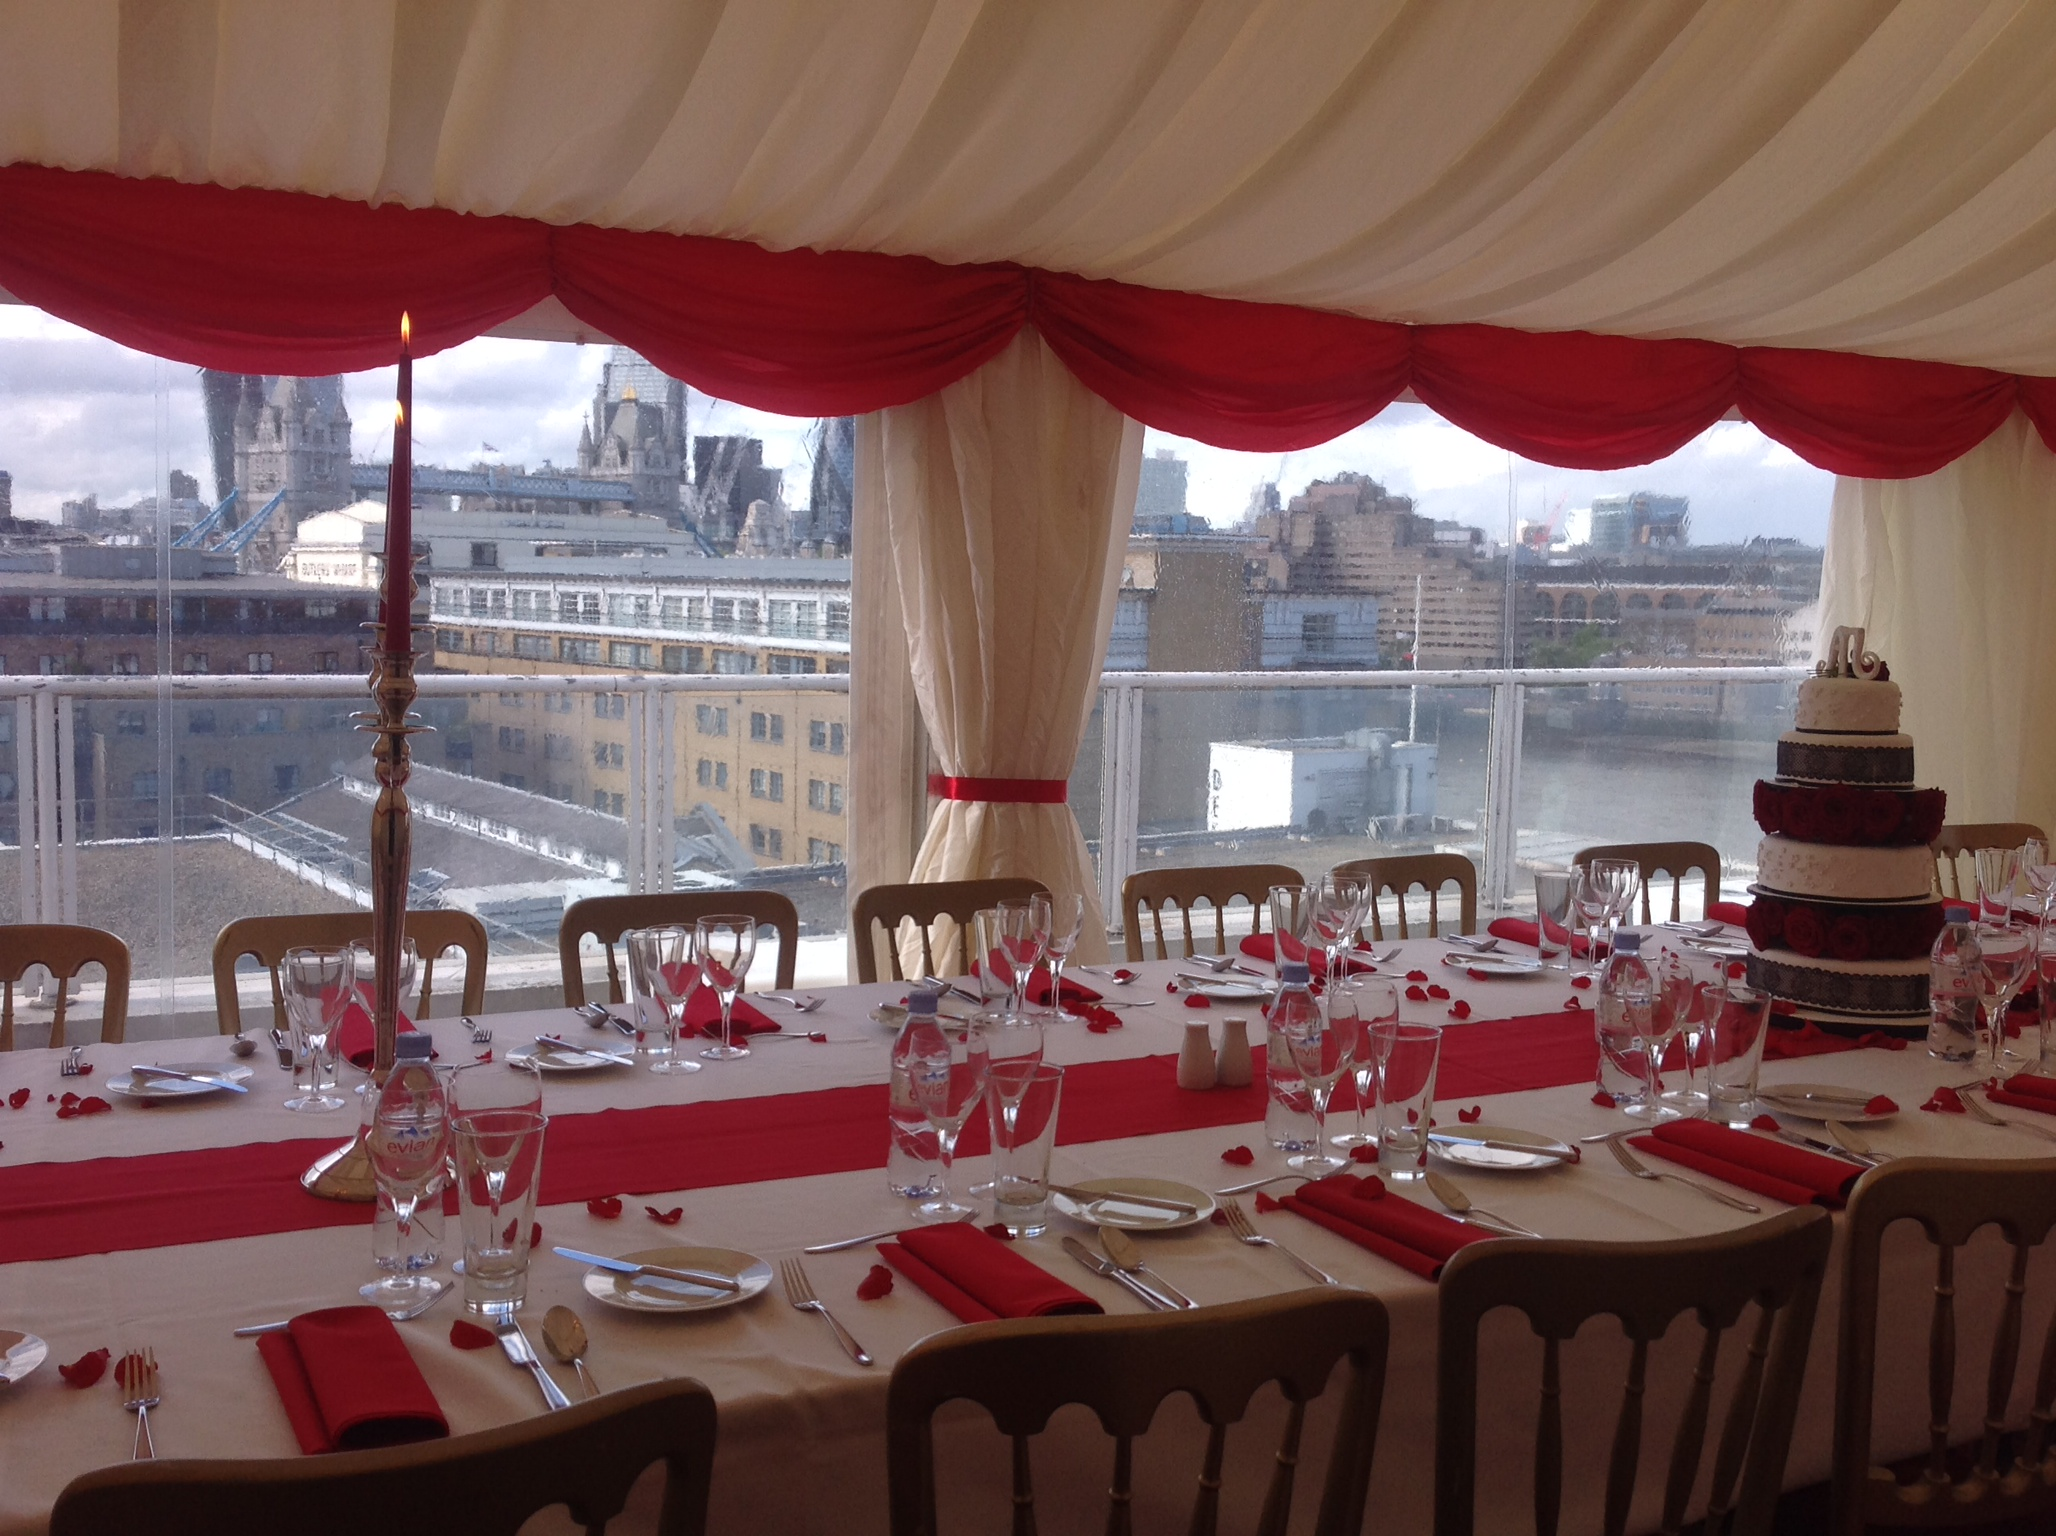 Marquee for engagement dinner overlooking Tower Bridge